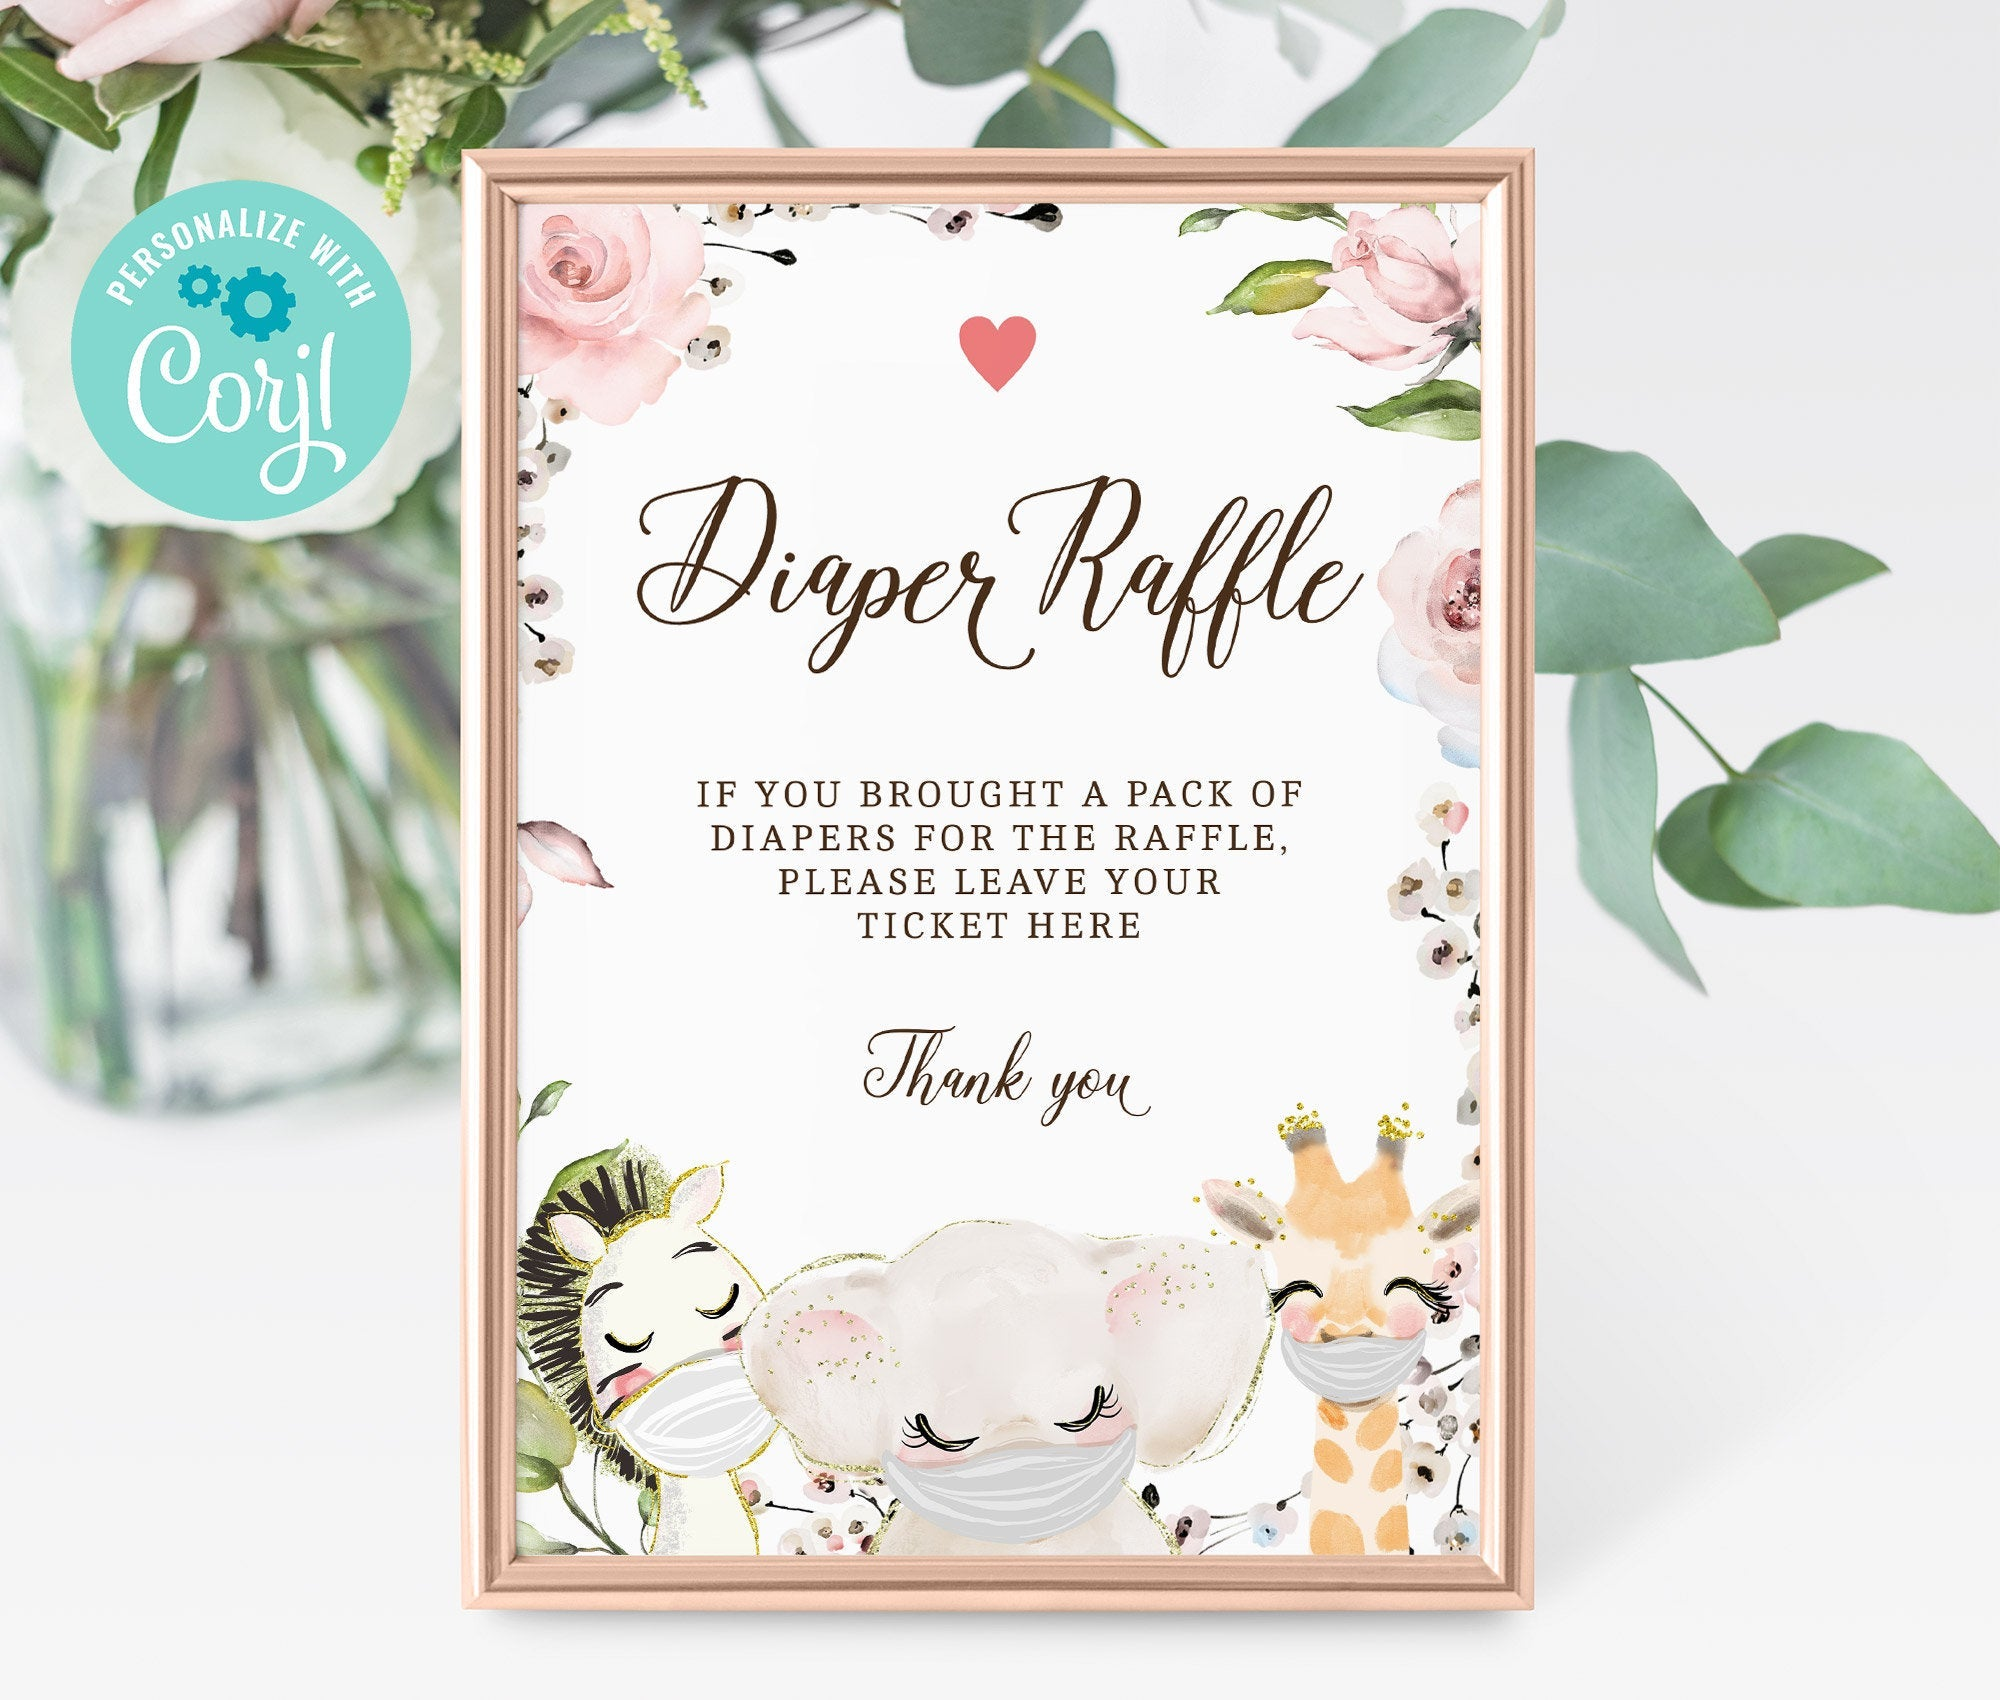 Diaper Raffle Sign - Baby Shower Diaper Raffle Sign - Printable Baby Shower Sign - Editable - Instant Download - BS3602 - 3601